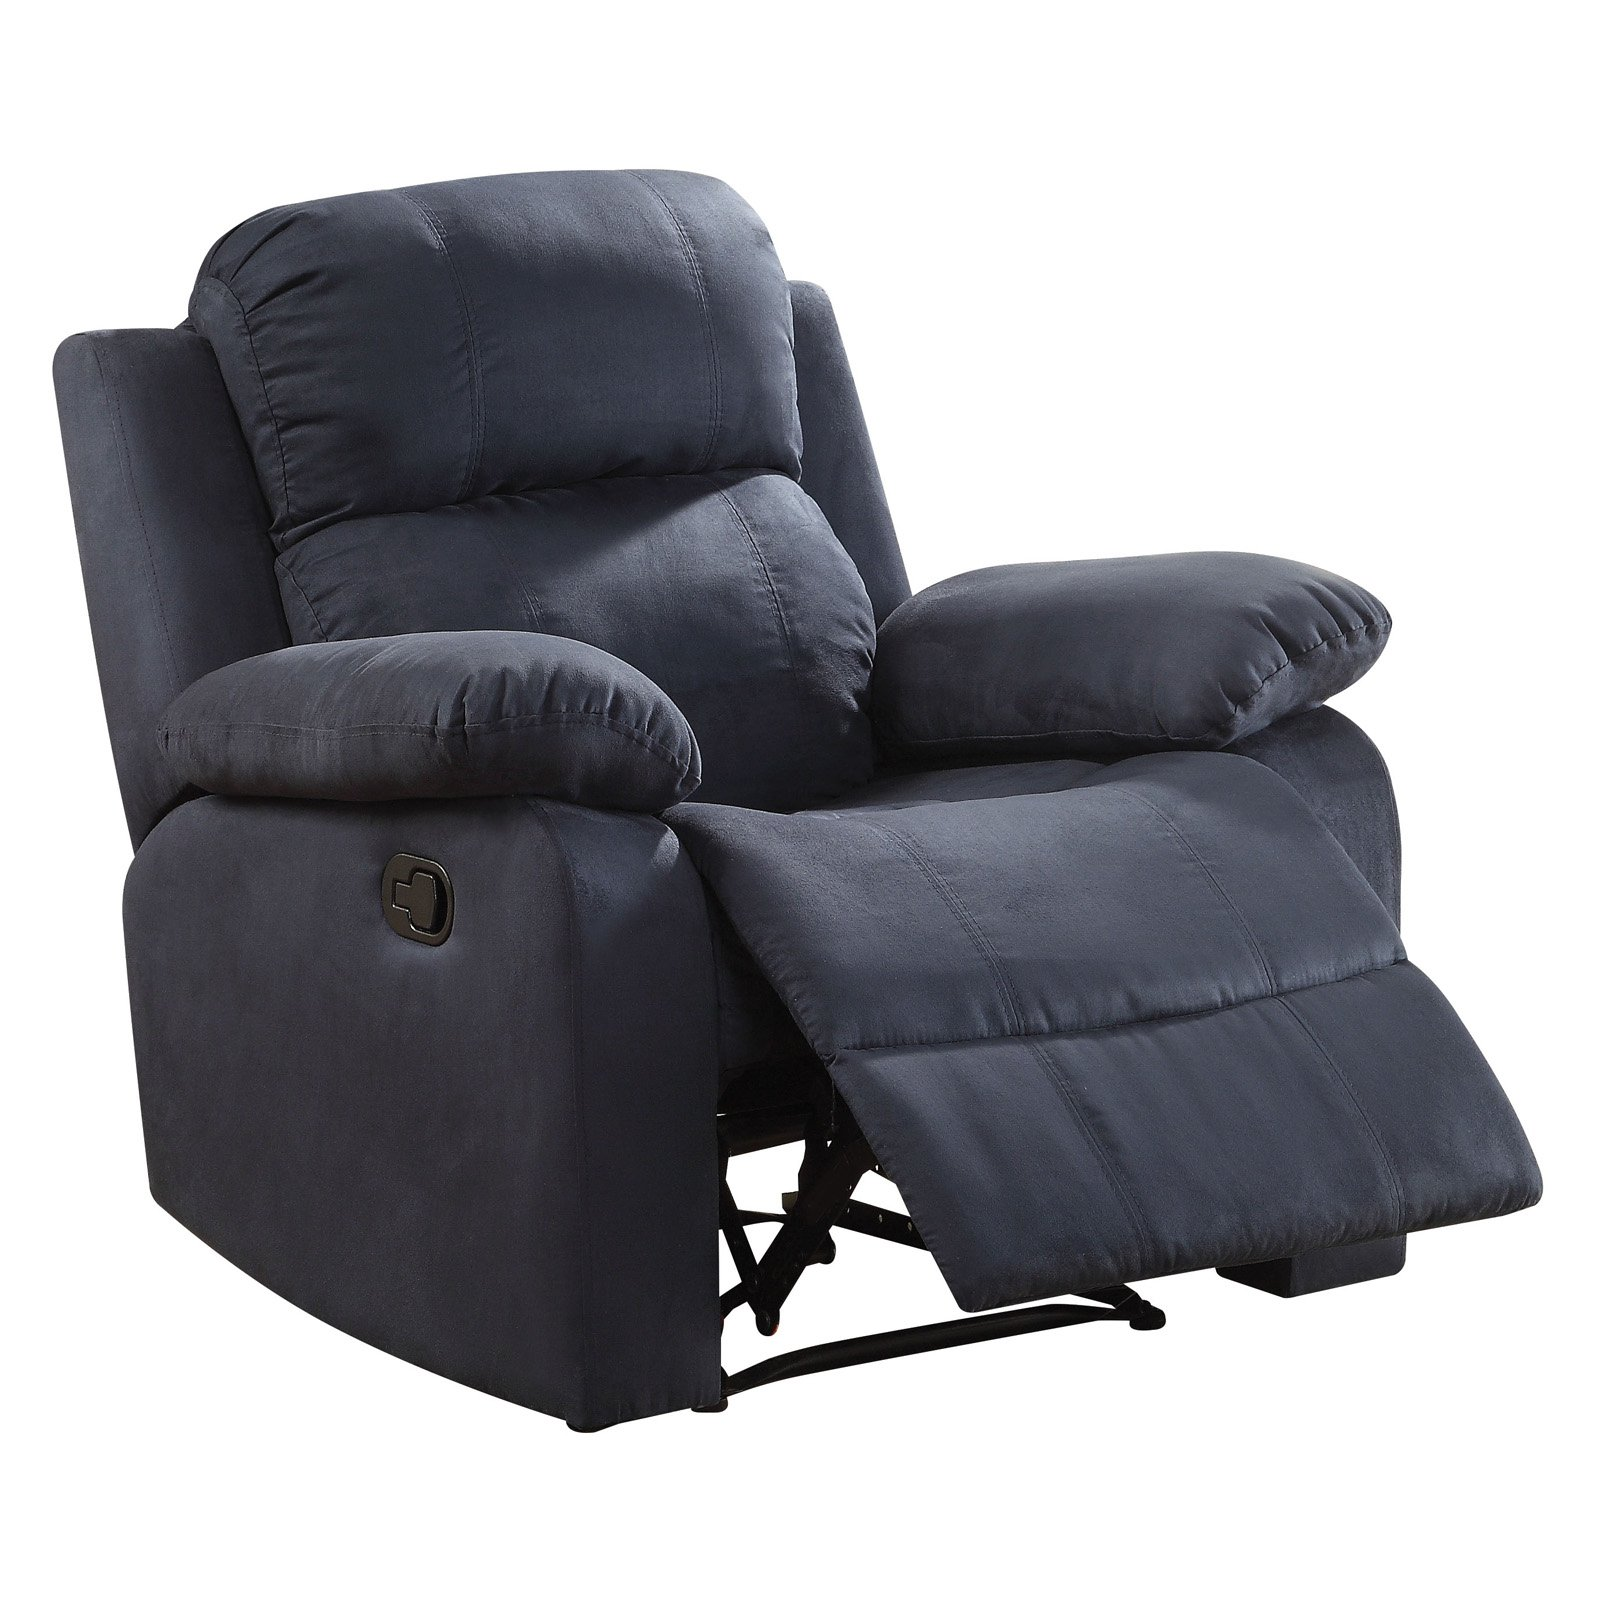 ACME Parklon Recliner, Multiple Colors